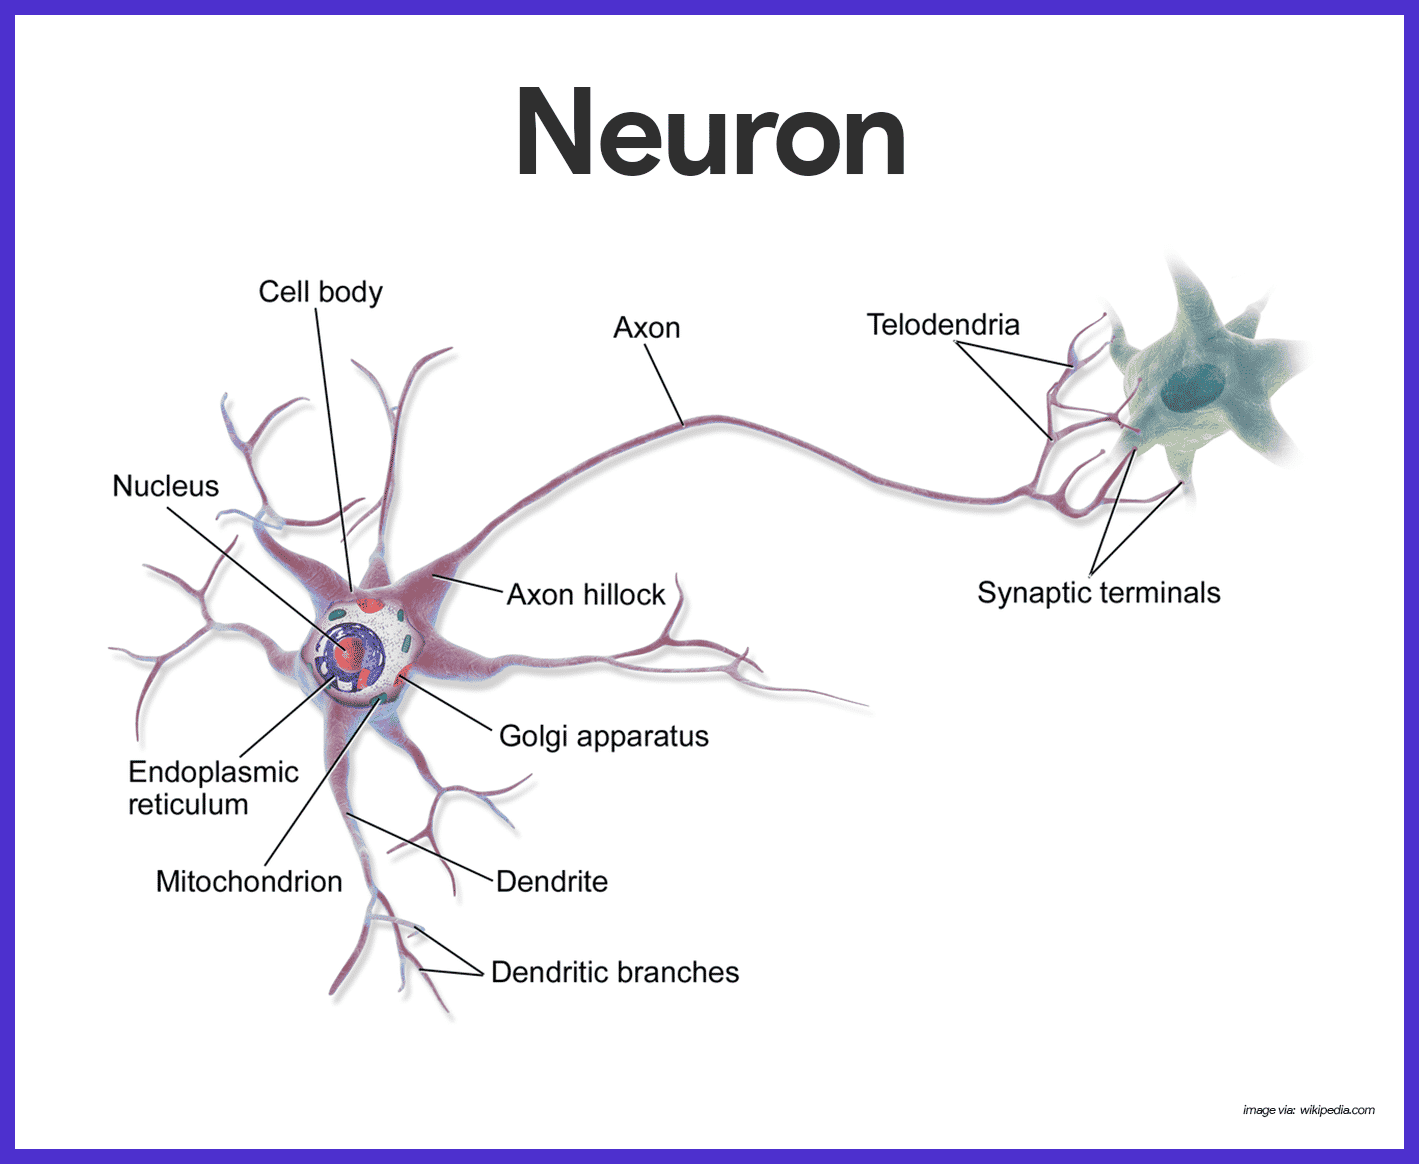 Nervous System Neuron Diagram